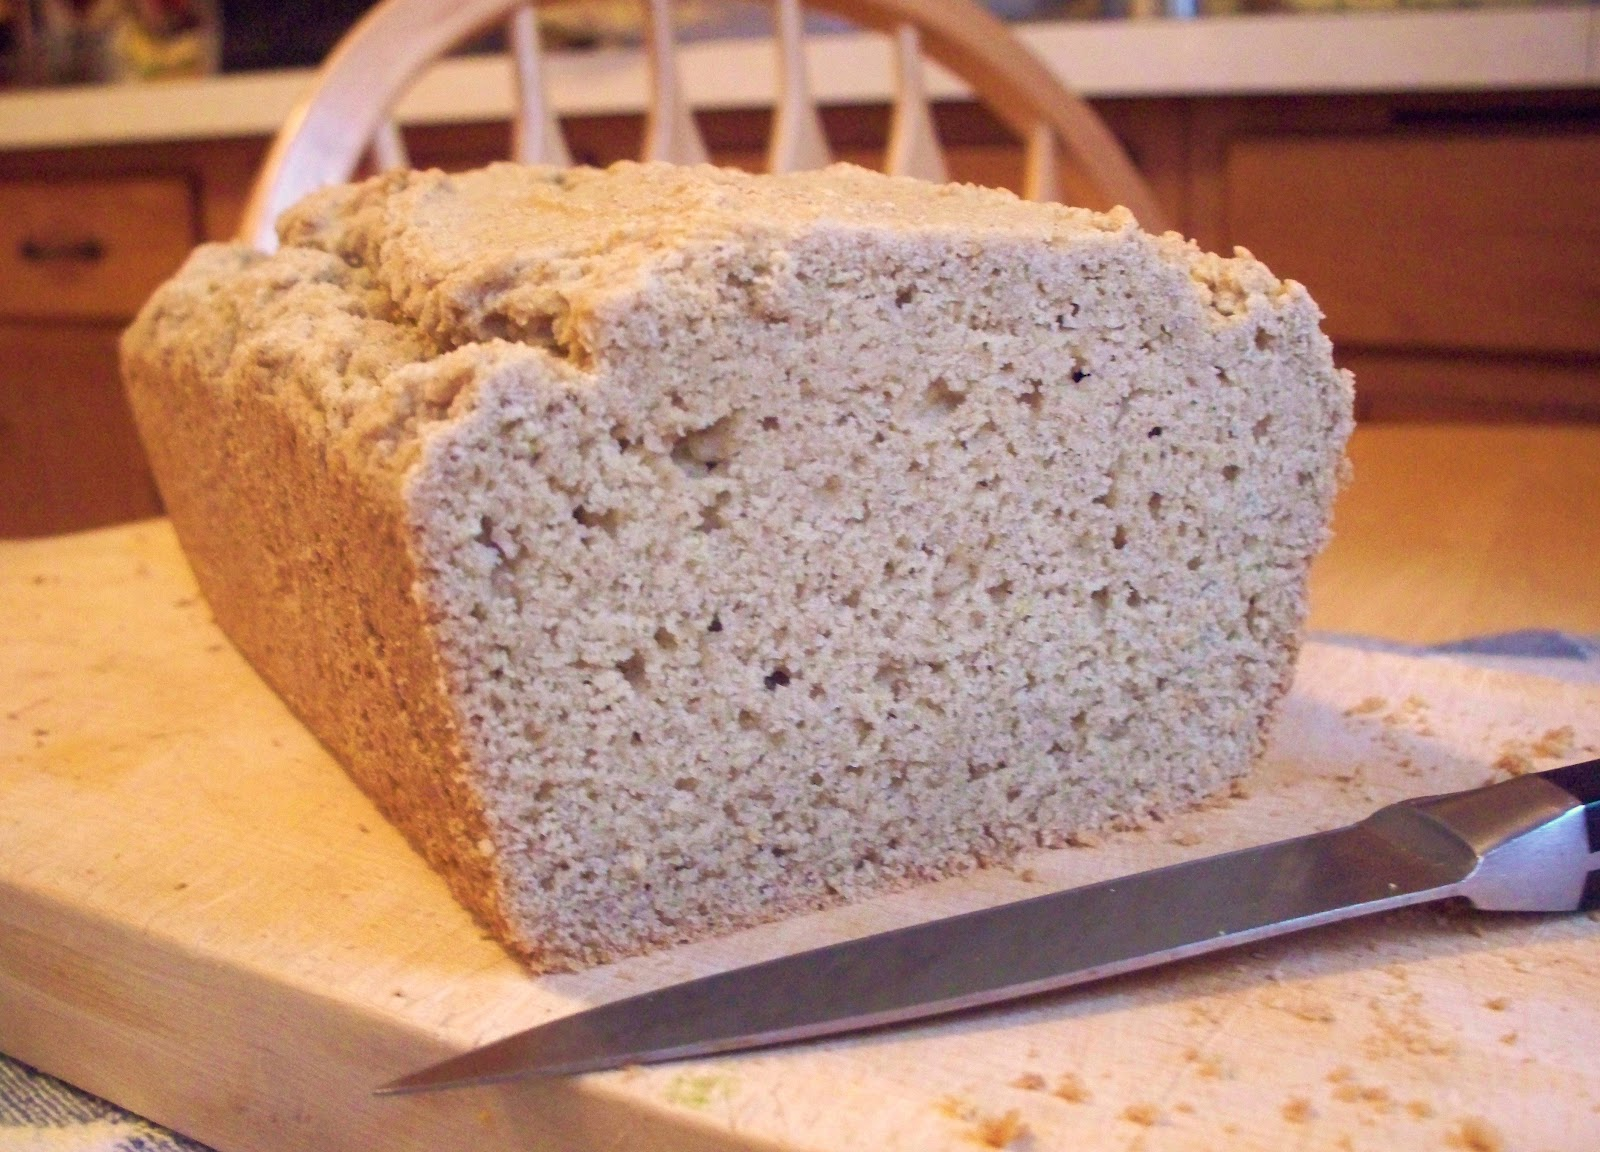 Tweaked: Irish Soda Bread (traditional, gluten free and dairy free ...